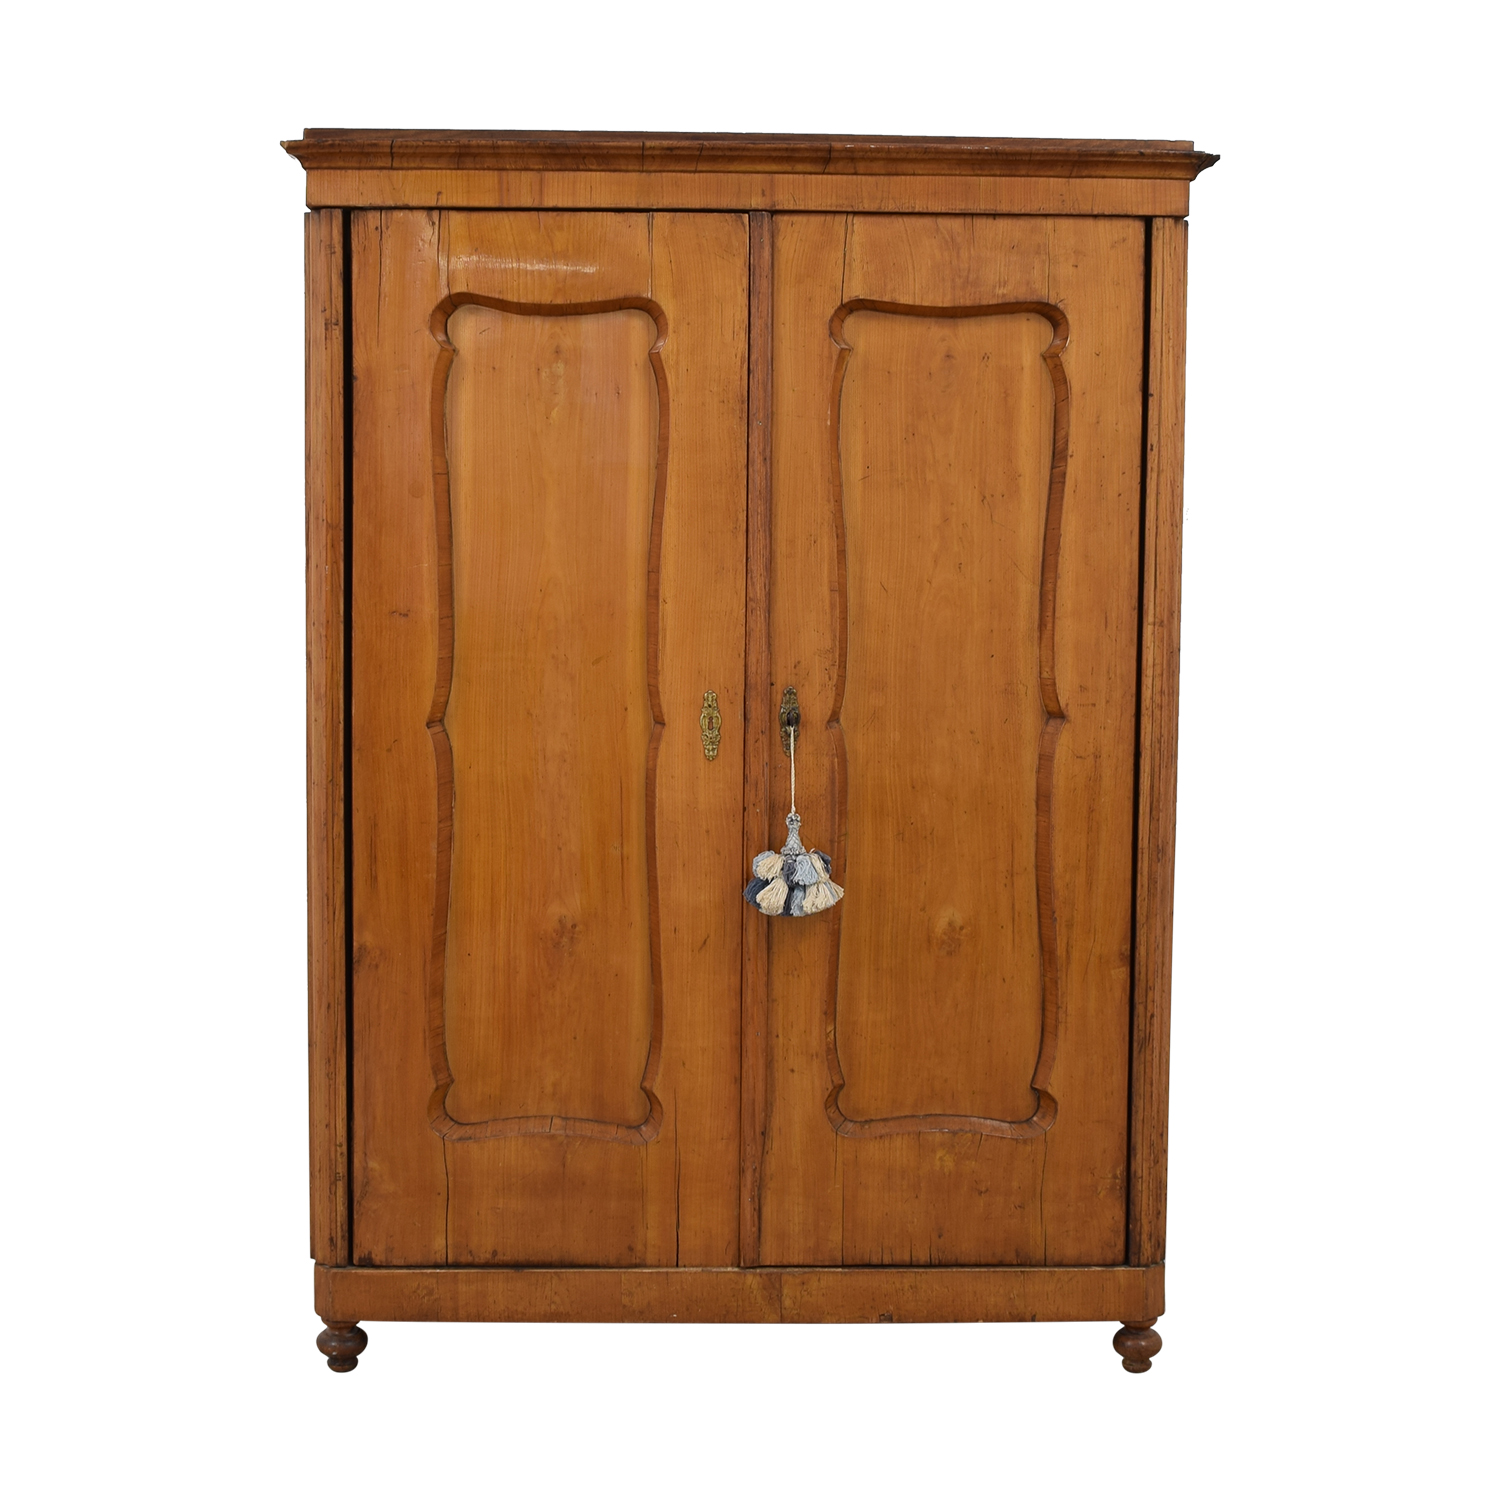 Wood Wardrobe Armoire with Shelves nj